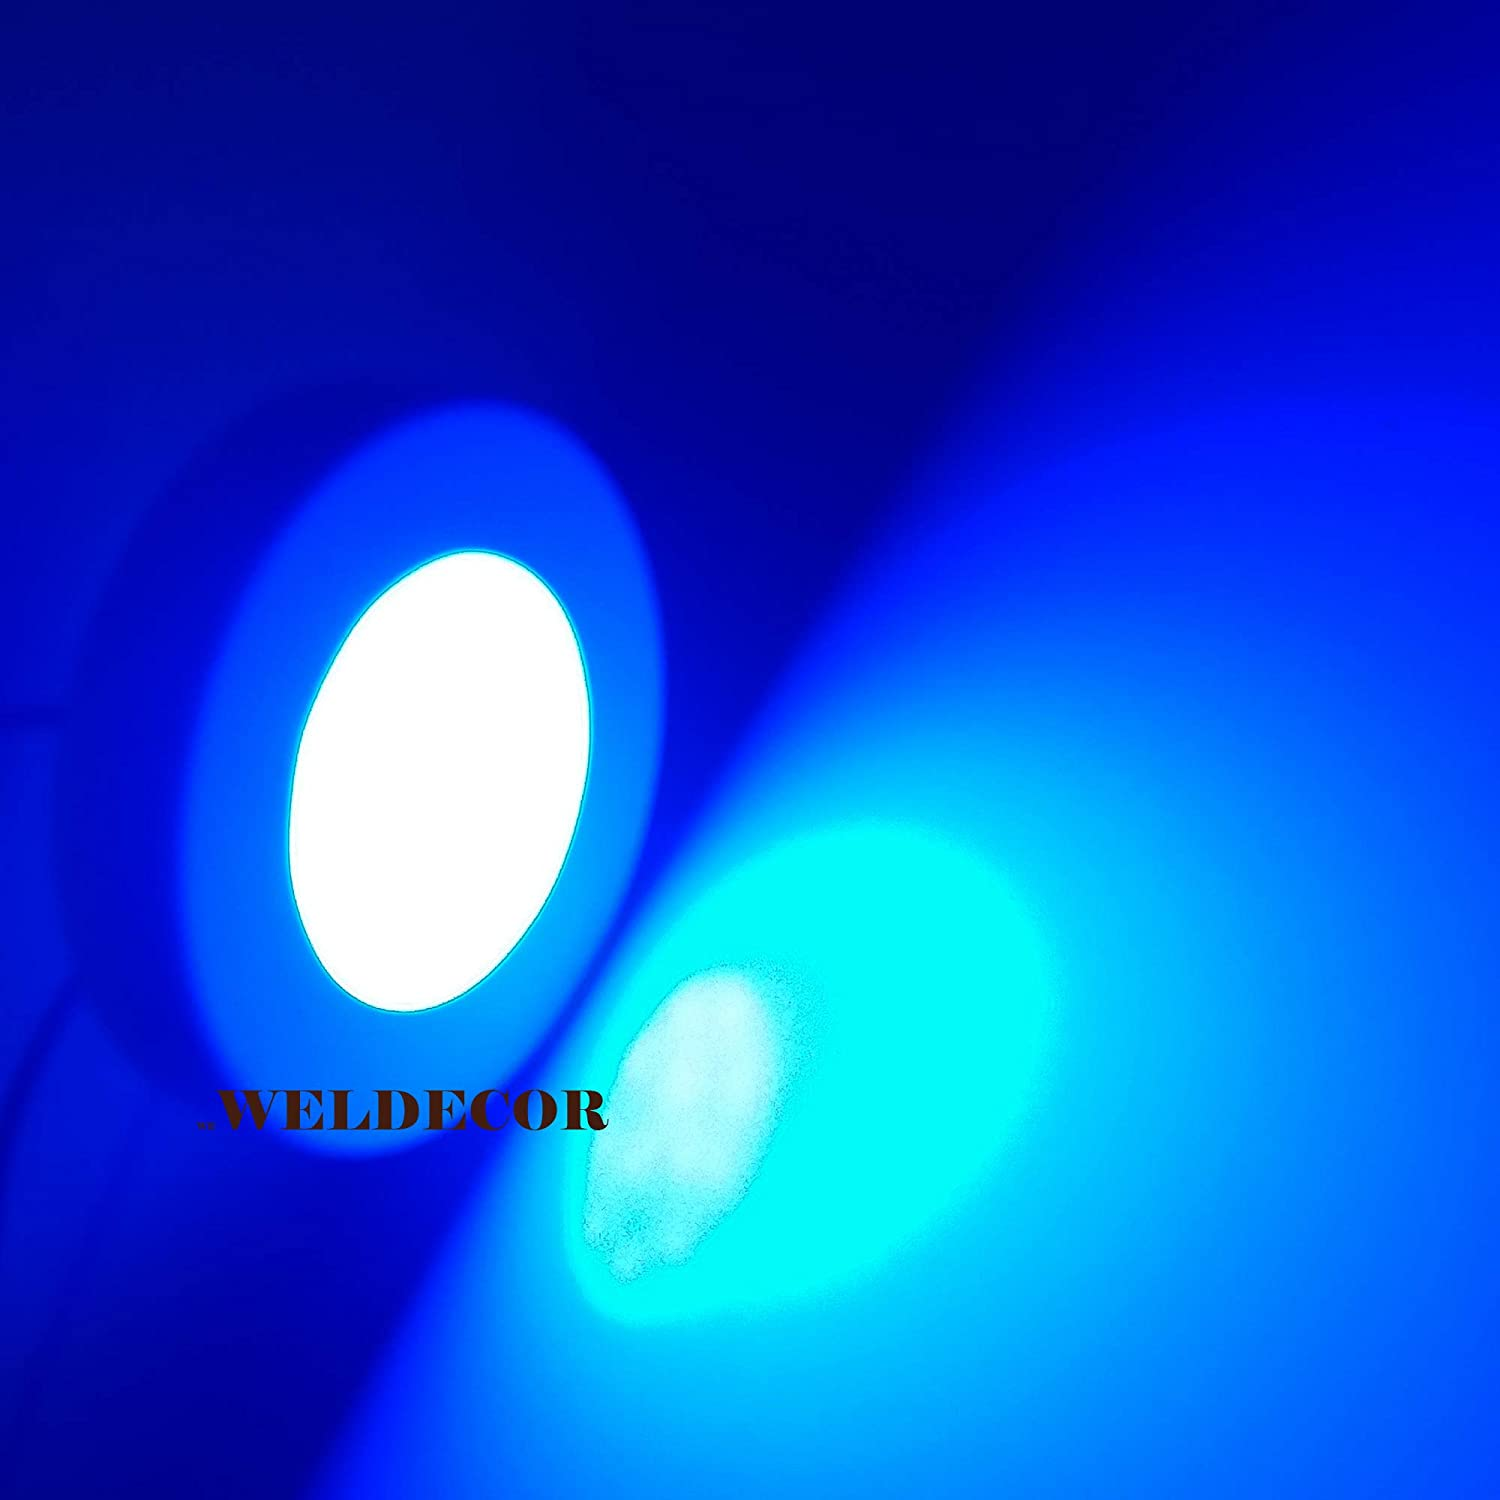 Weldecor 6wt Led Ceiling Light Blue Slim Surface Round Panel For Decoration Amazon In Home Kitchen